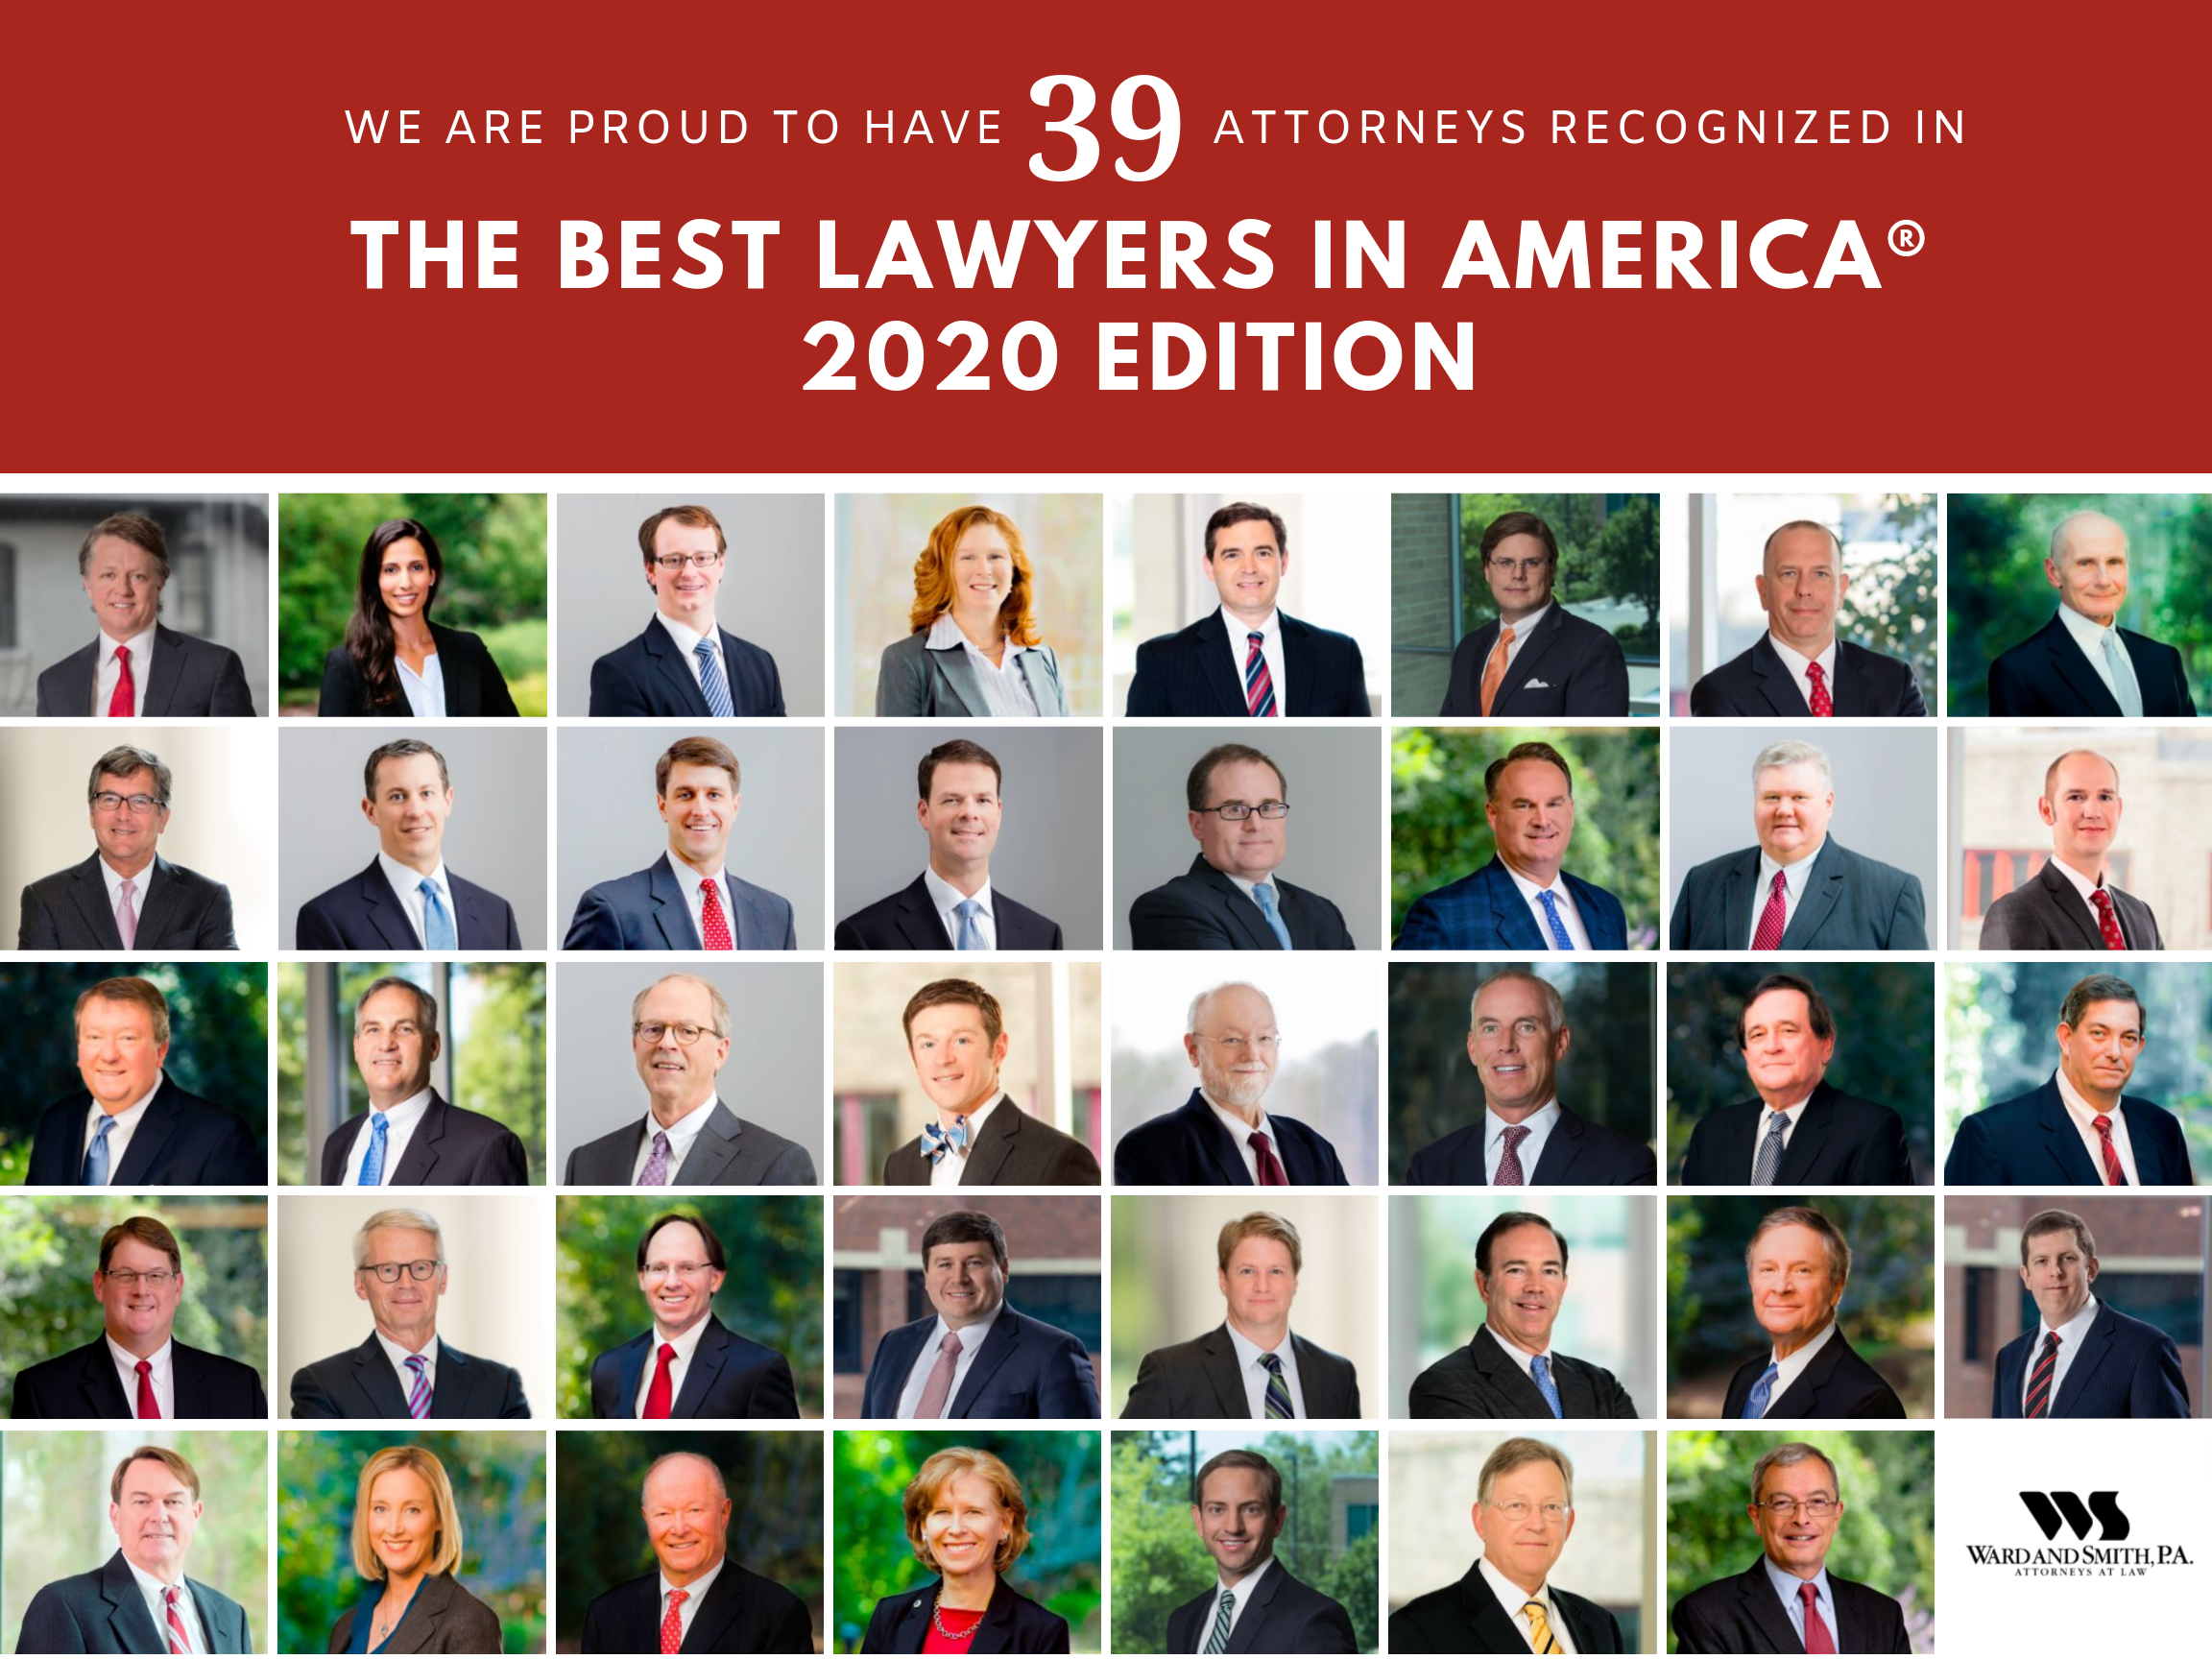 39-Attorneys-Best-Lawyers-2020